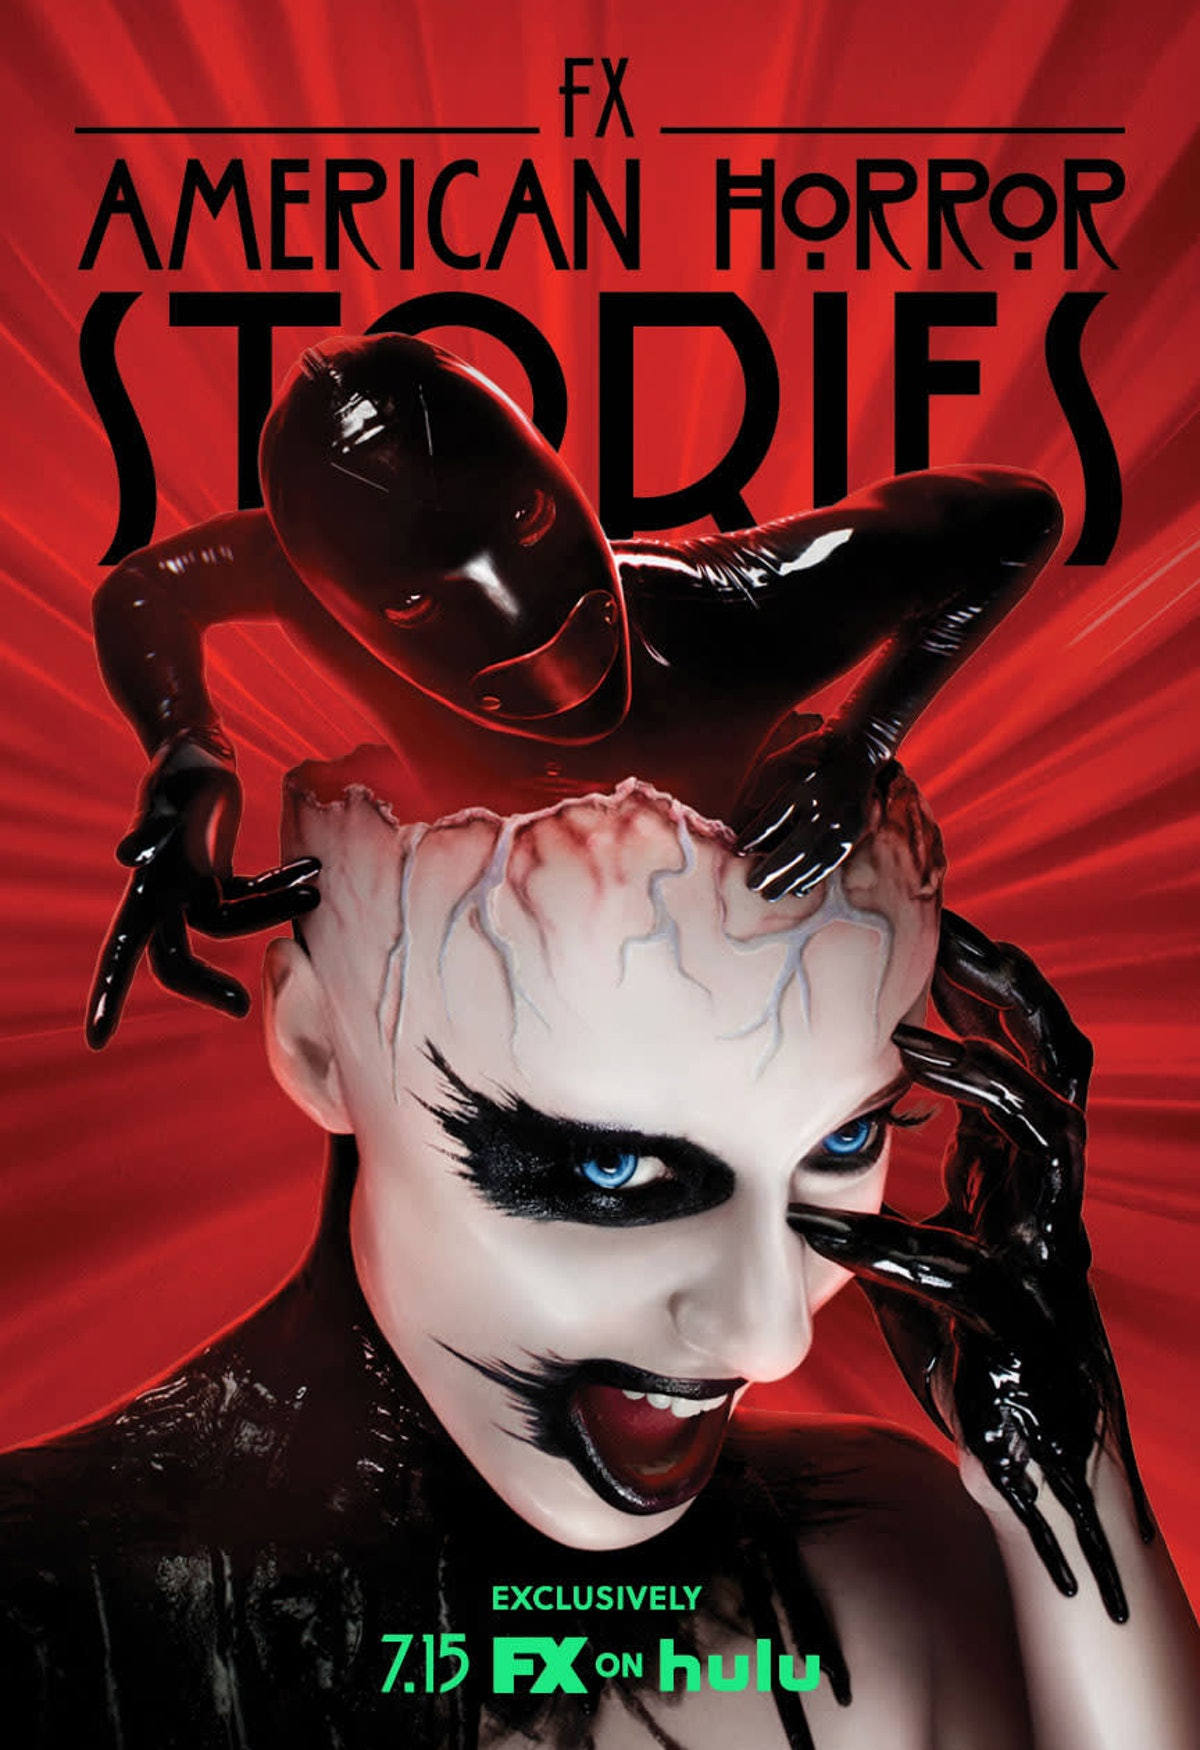 The Rubber Woman poster for American Horror Stories